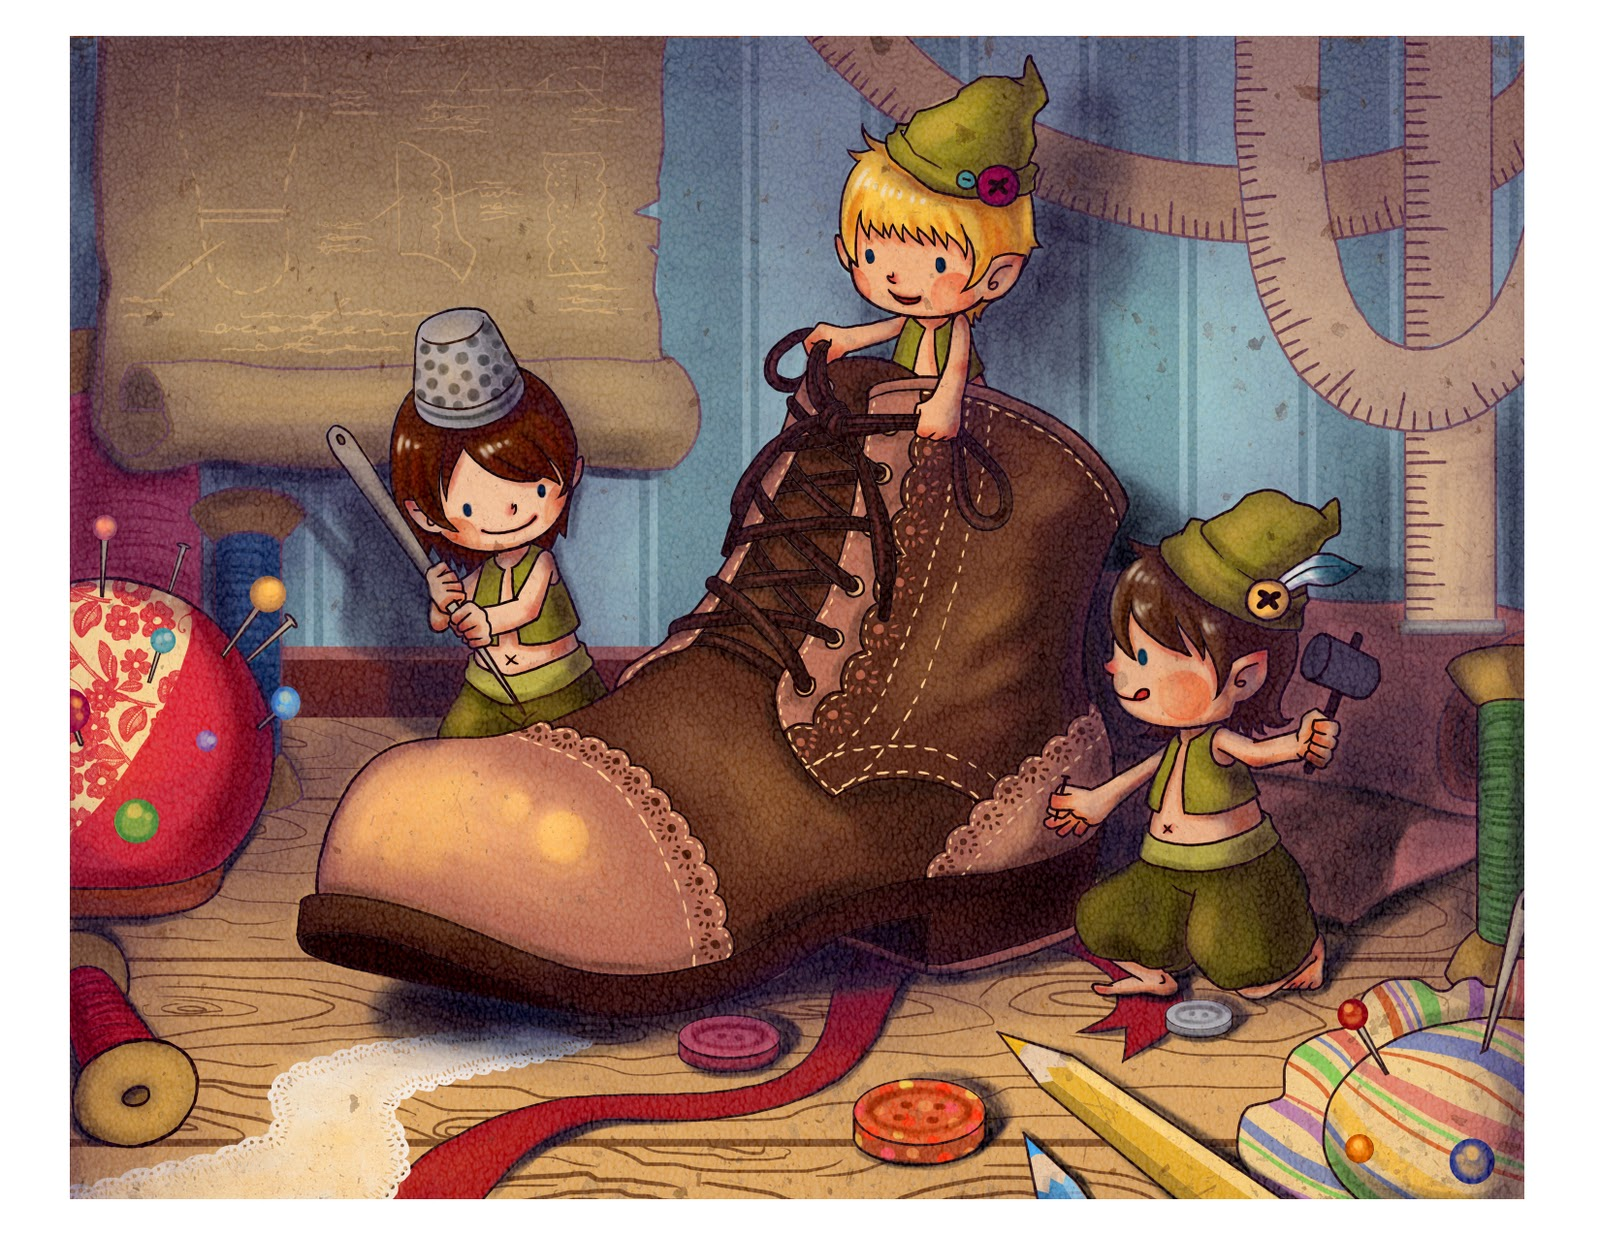 Fairytales4kids The Elves And The Shoemaker